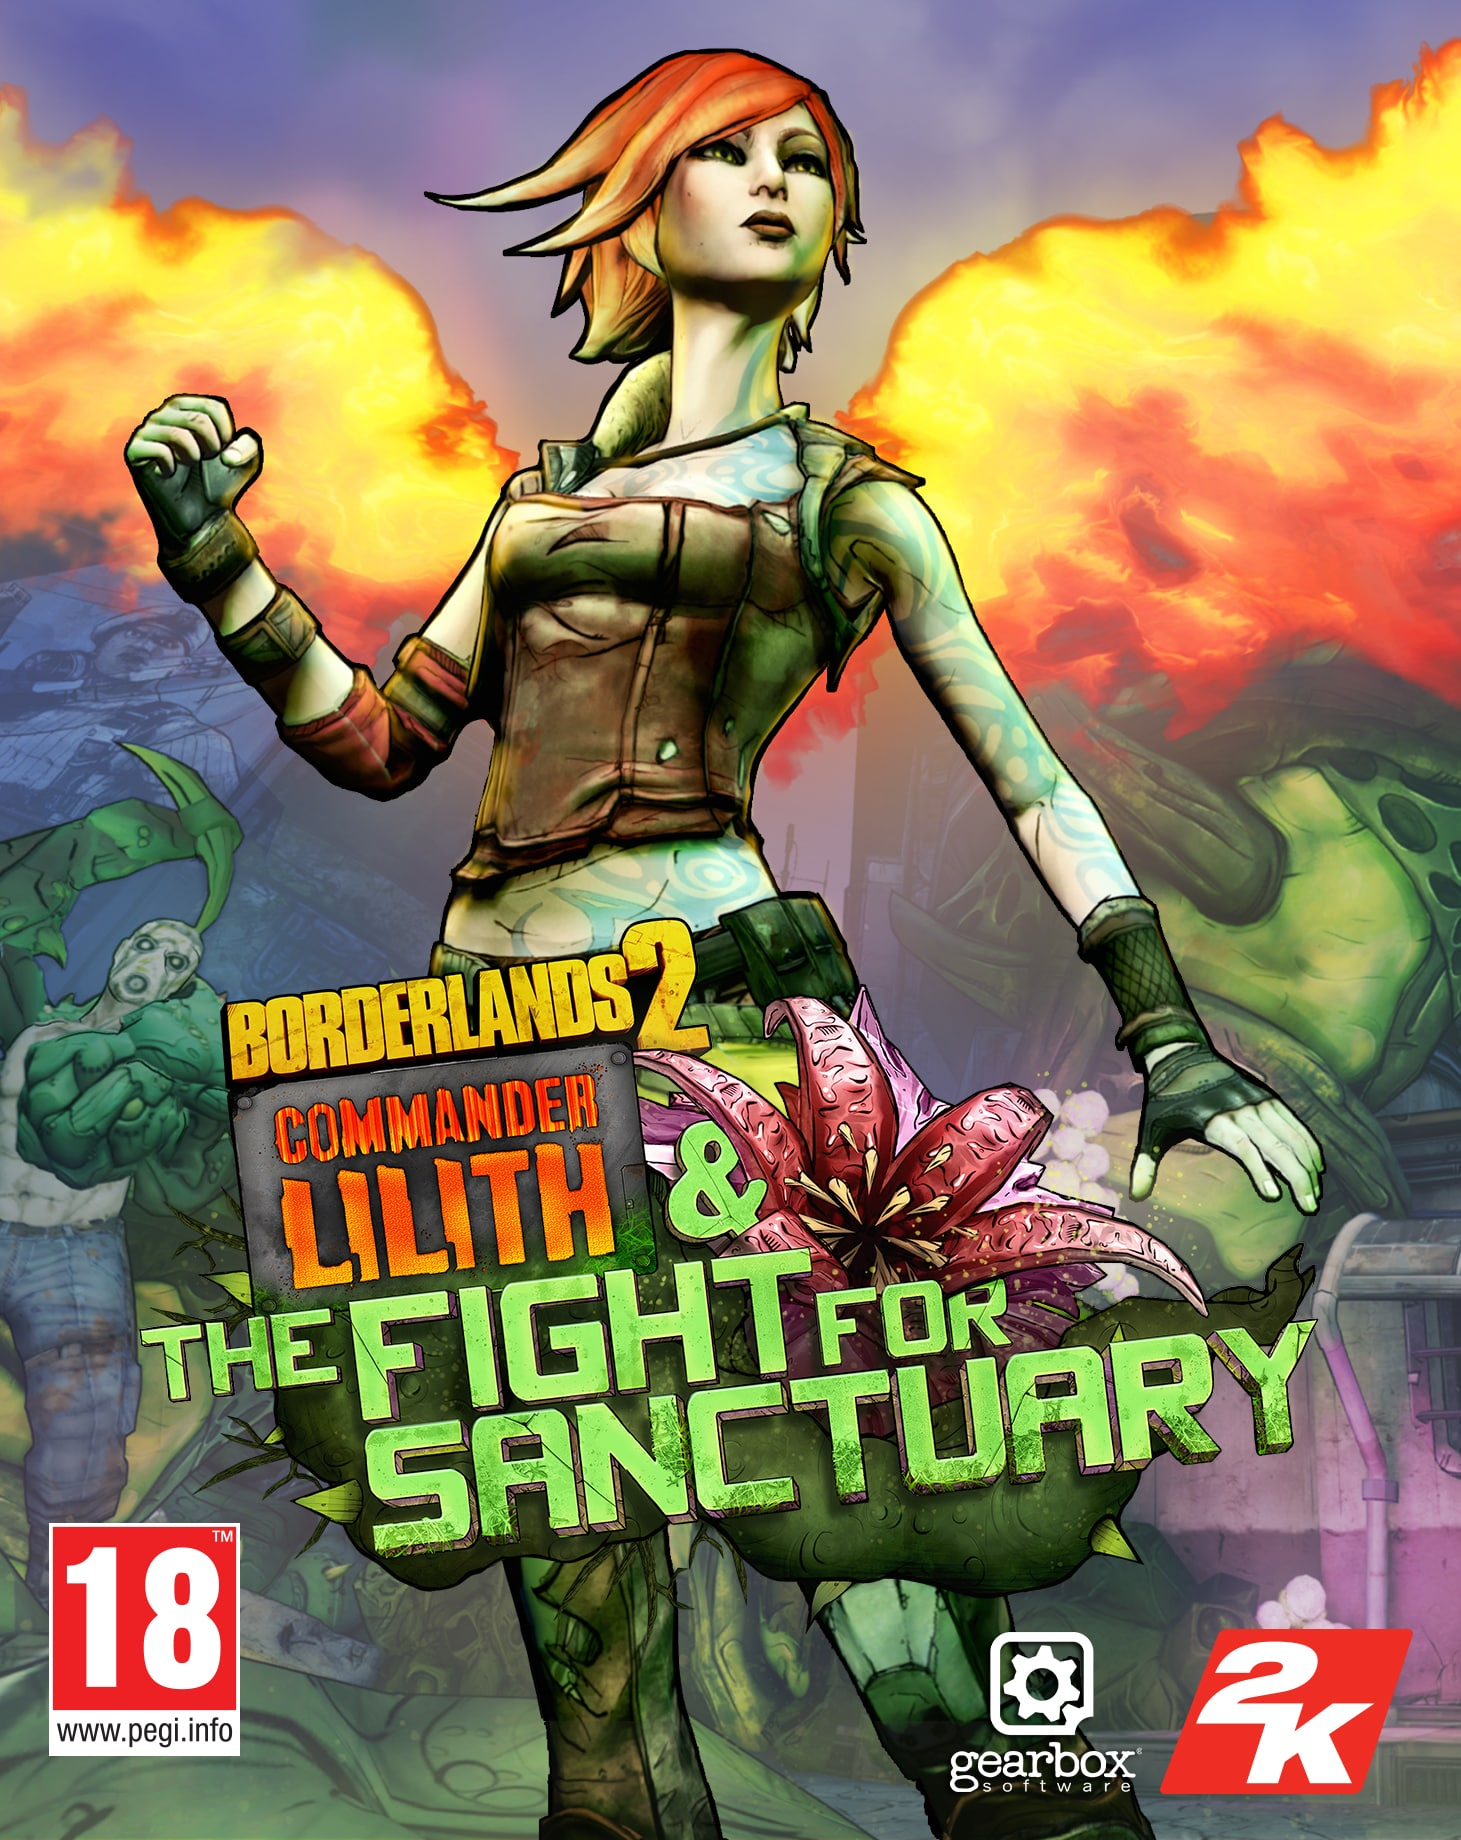 Borderlands 2: Commander Lilith & the Fight for Sanctuary (PC) Klíč Steam (PC)